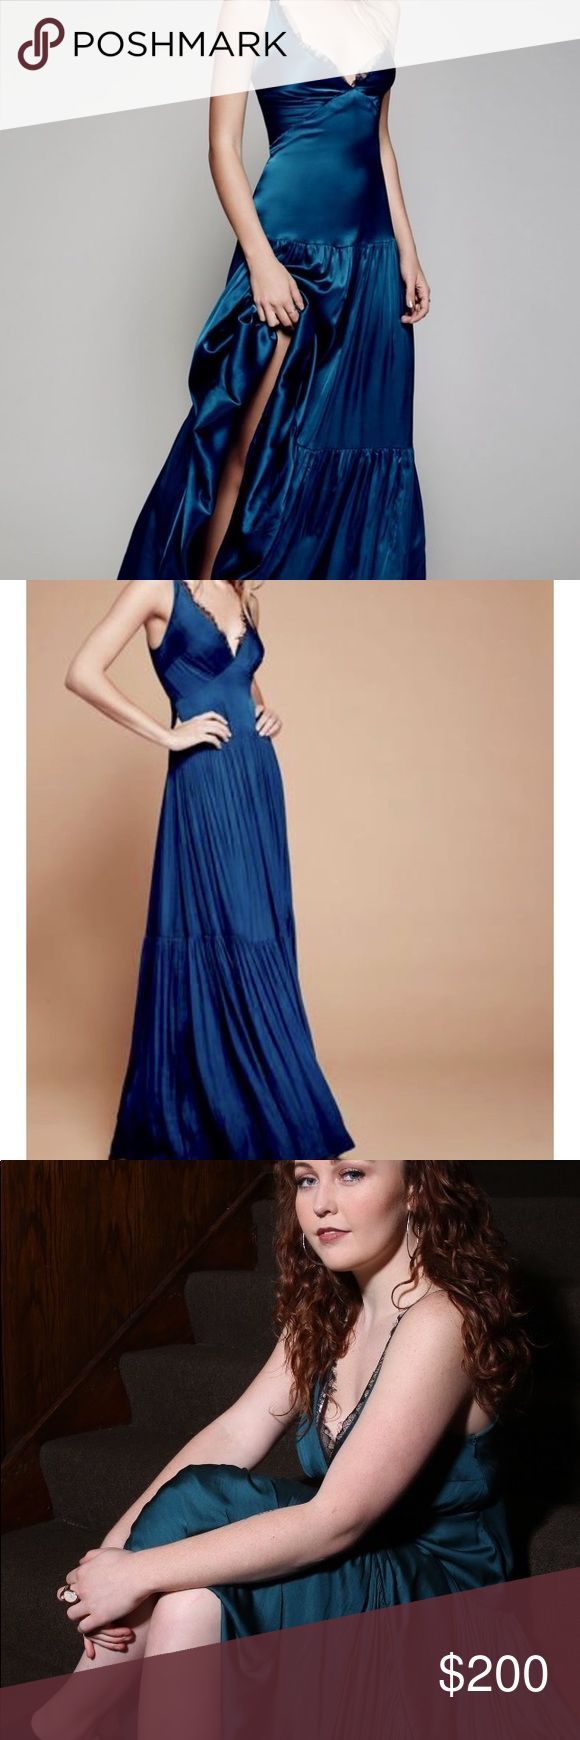 Free people satin turquoise gown This sultry turquoise dress is perfect for any …